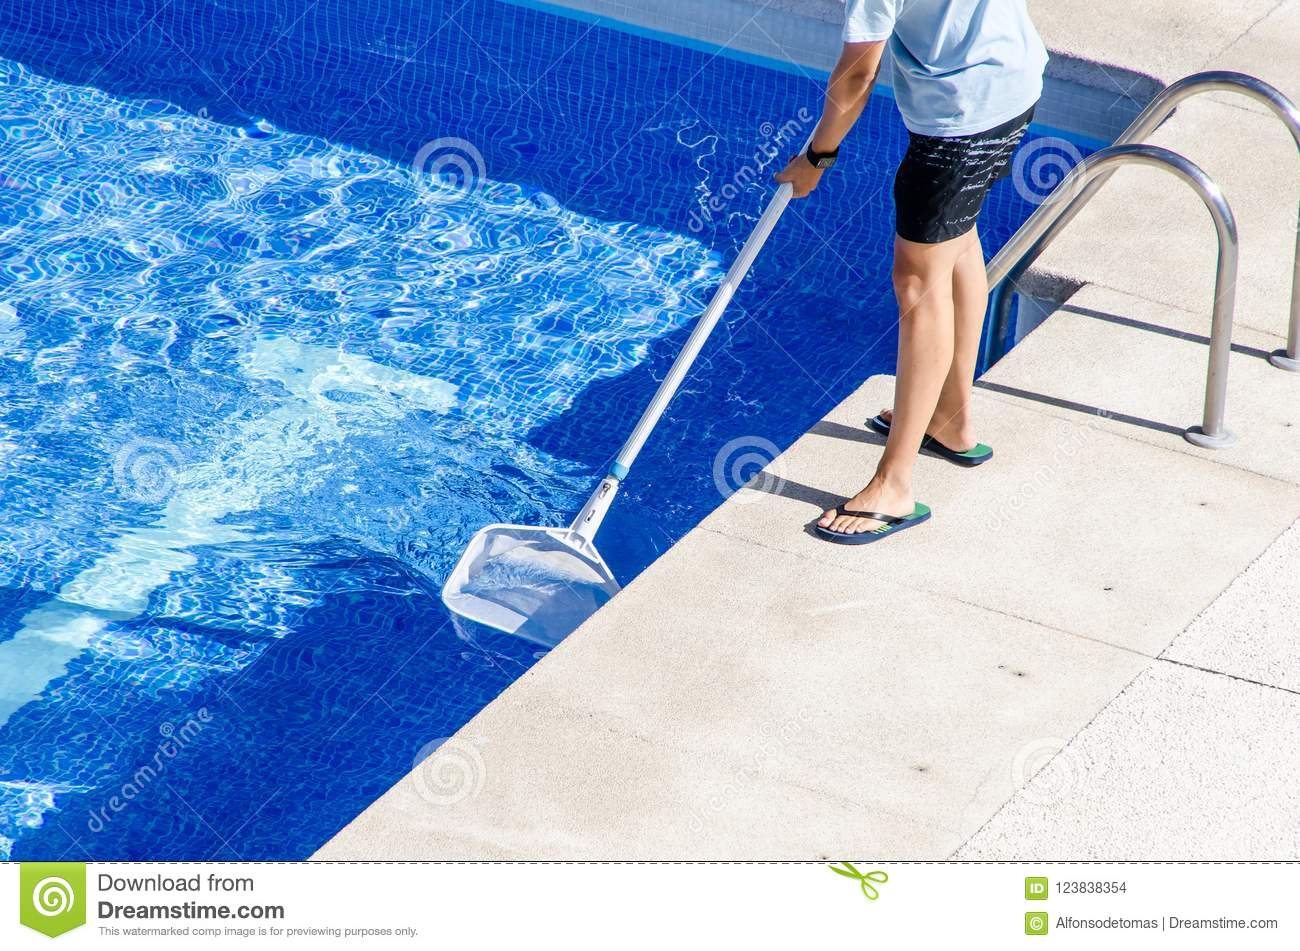 Cleaning The Swimming Pool With A Net Stock Photo - Image of ...